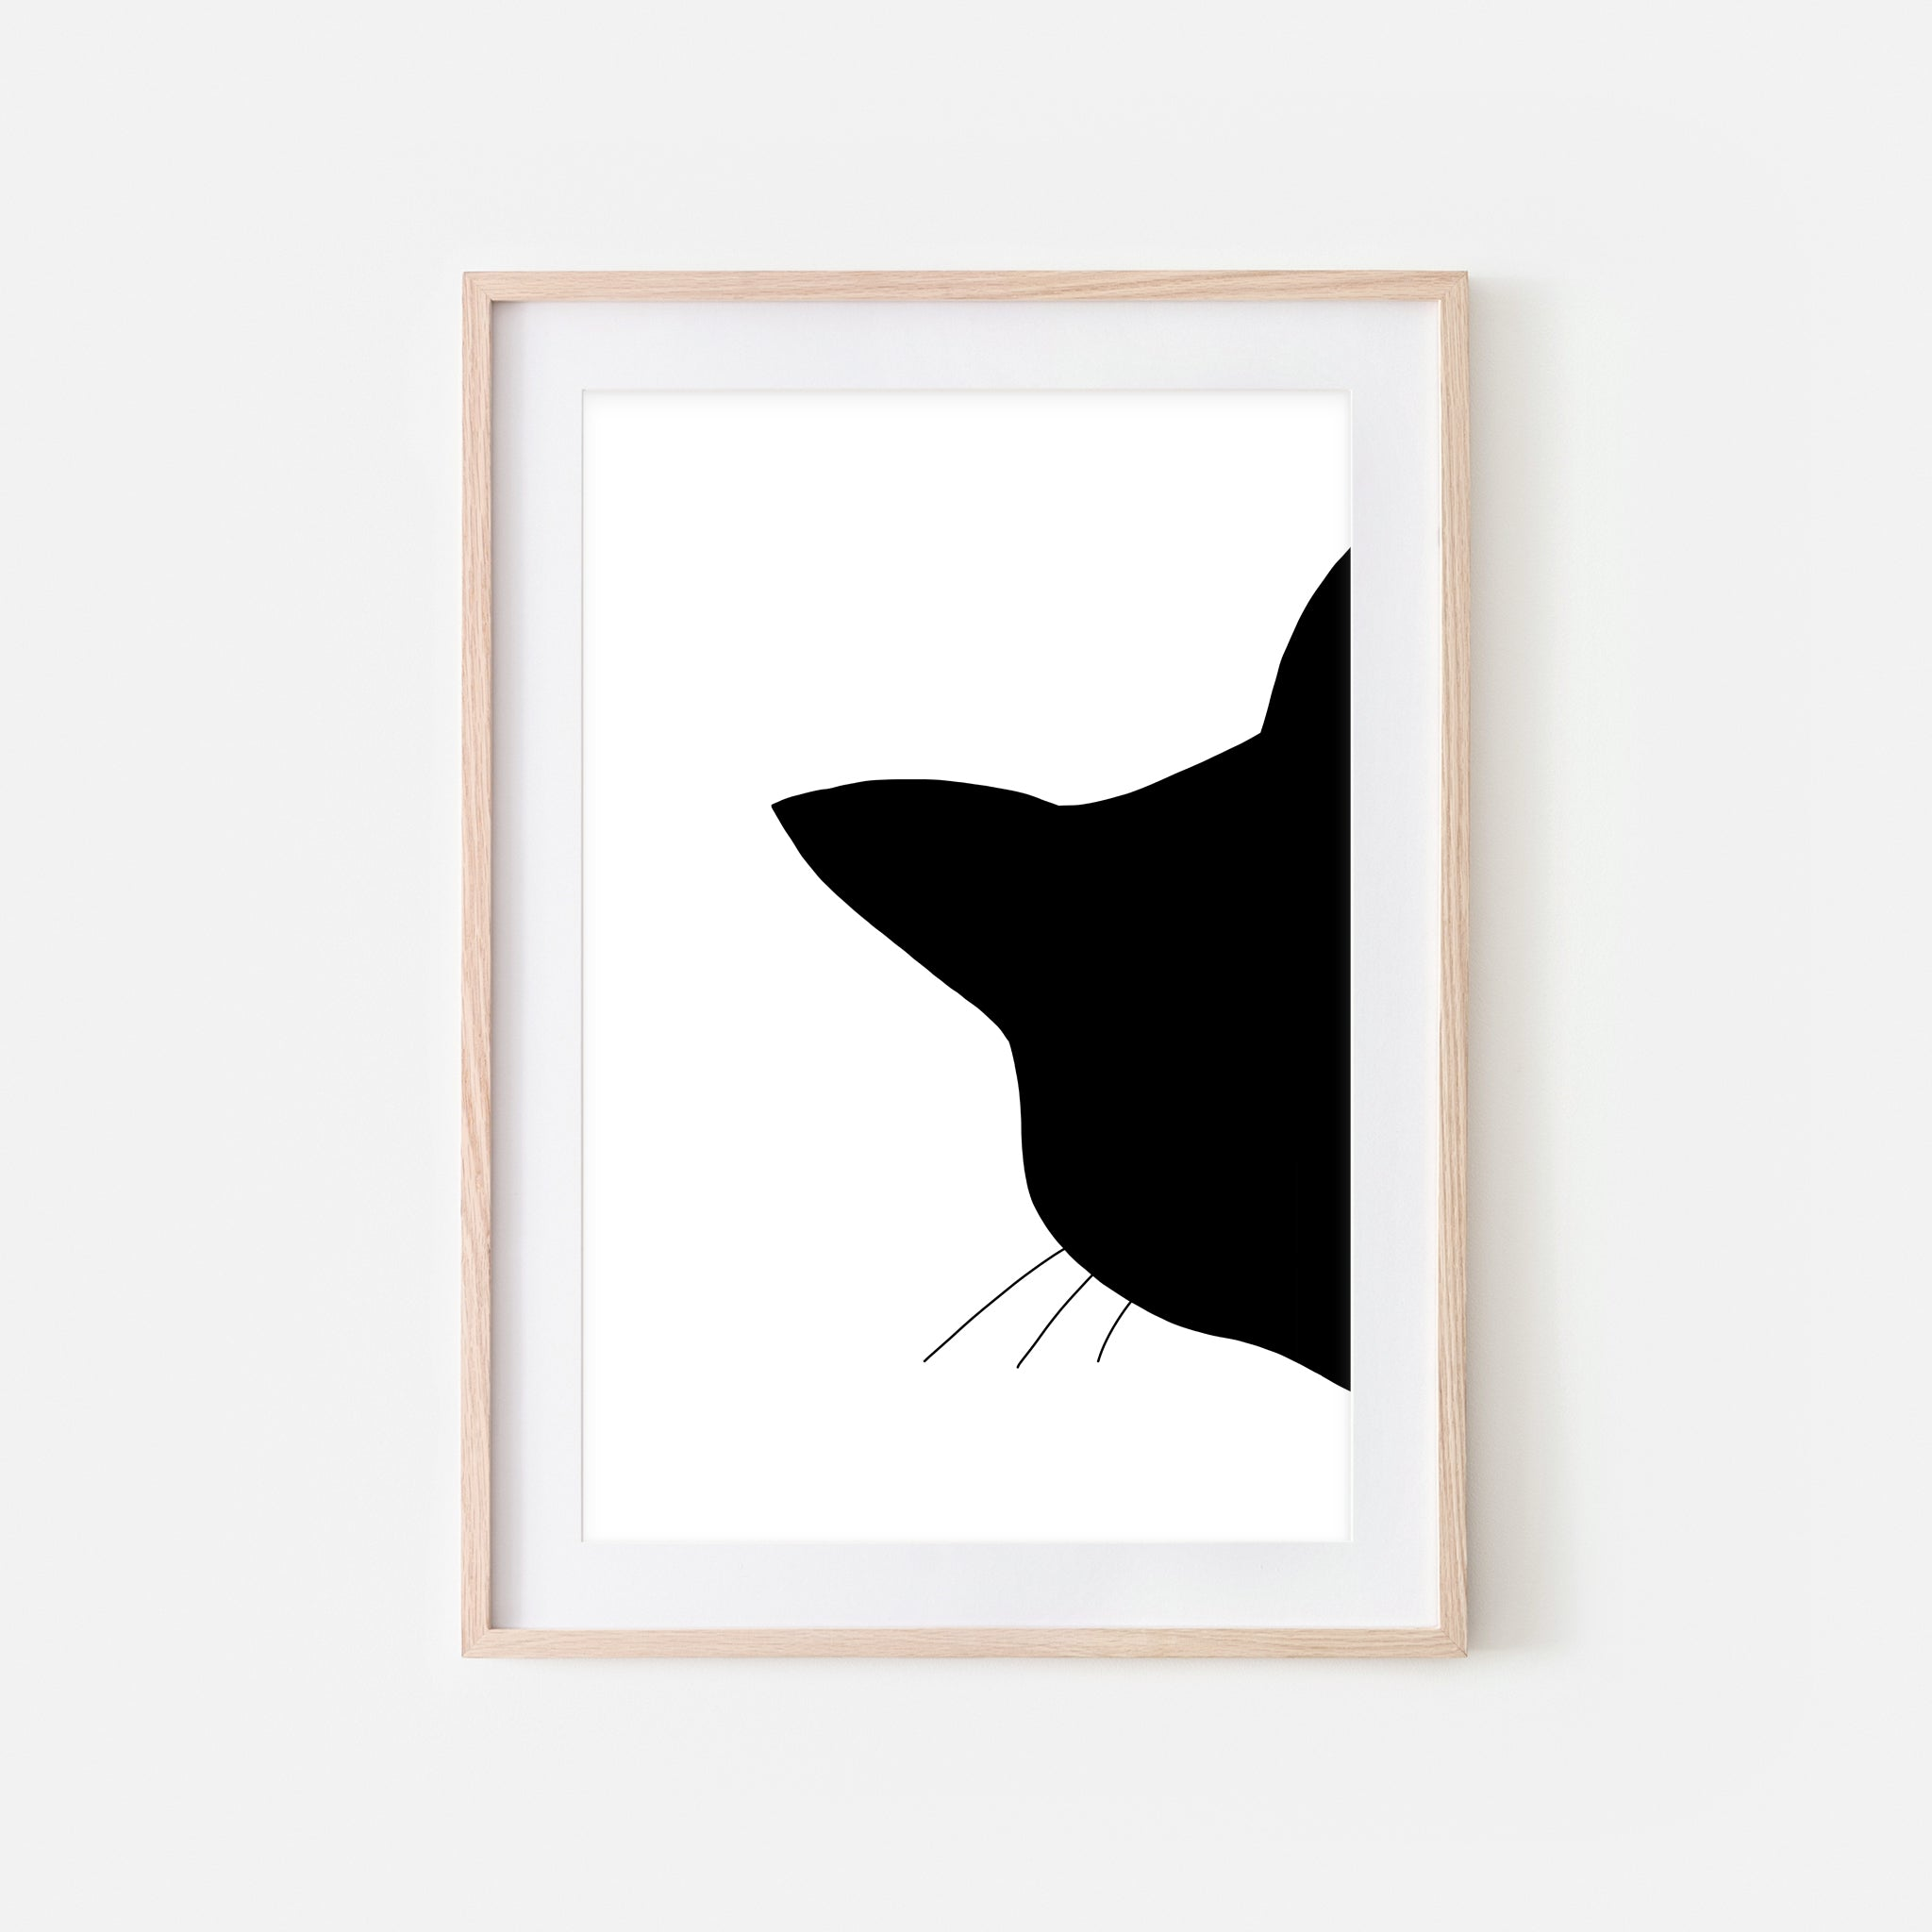 Cat Head Silhouette Wall Art - Minimalist Black and White Print, Poster or Printable Download